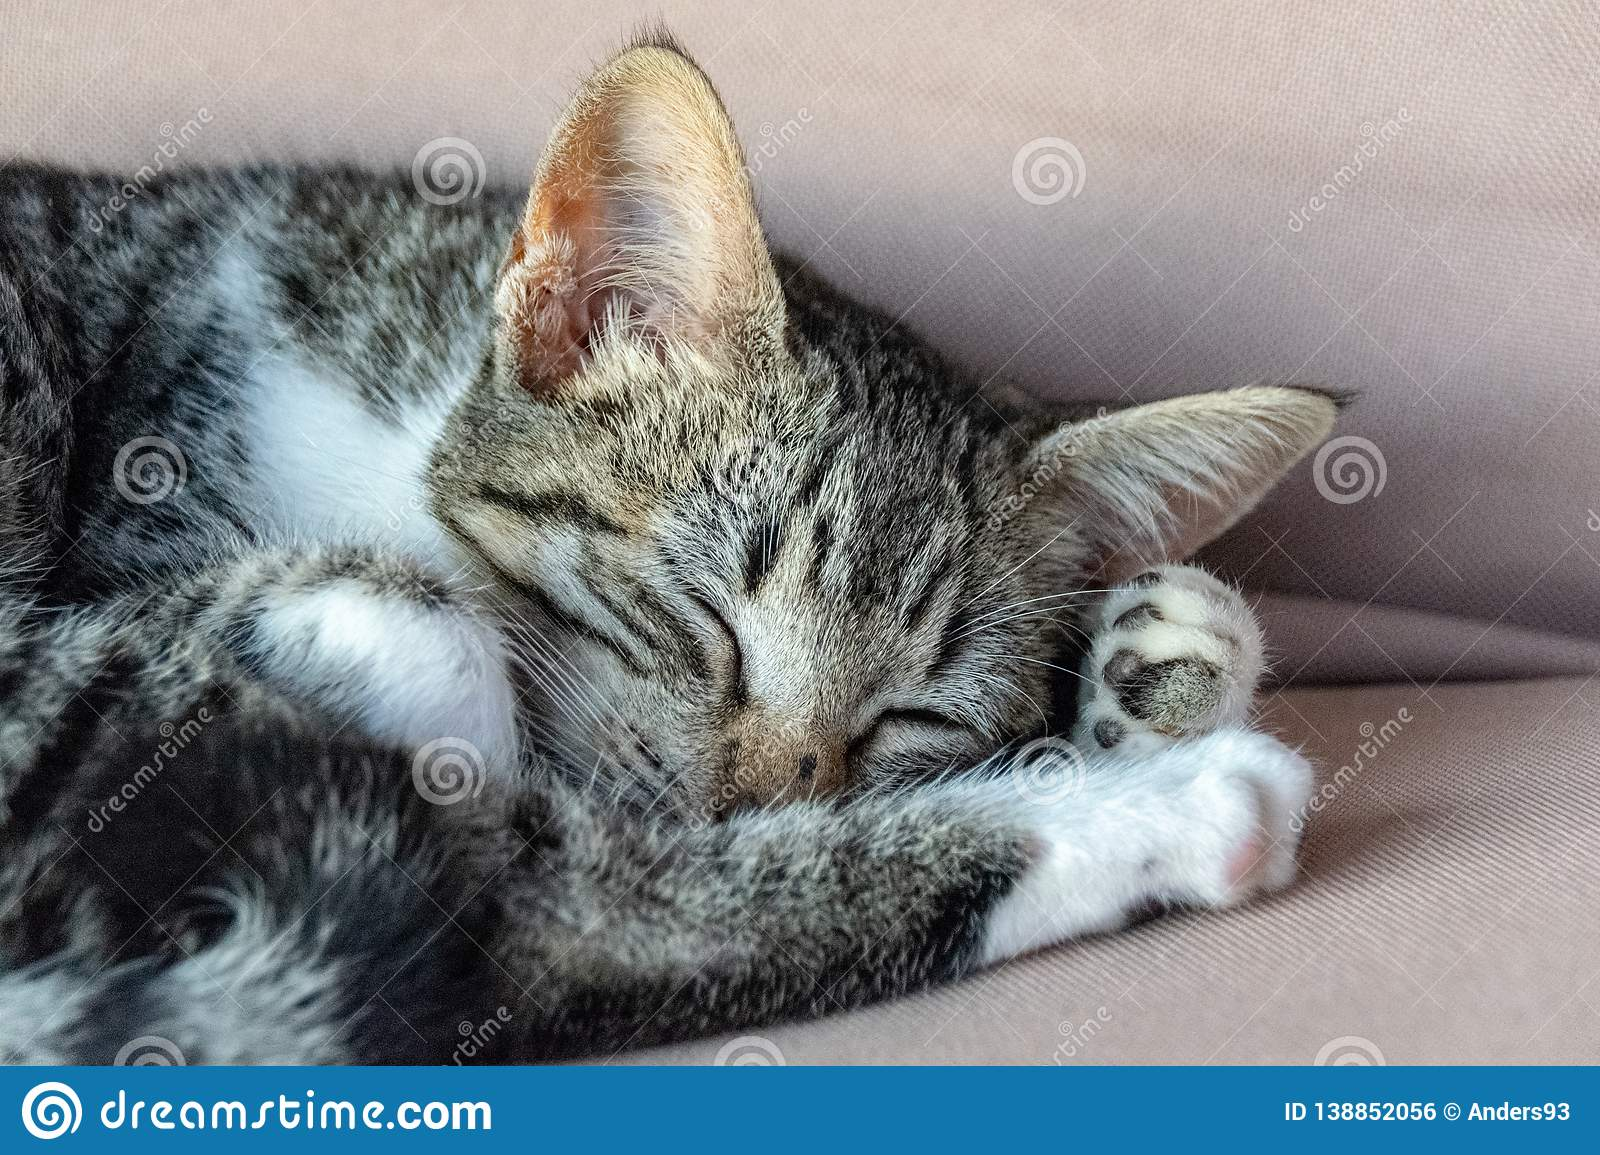 Portrait of a tabby cat curled up asleep